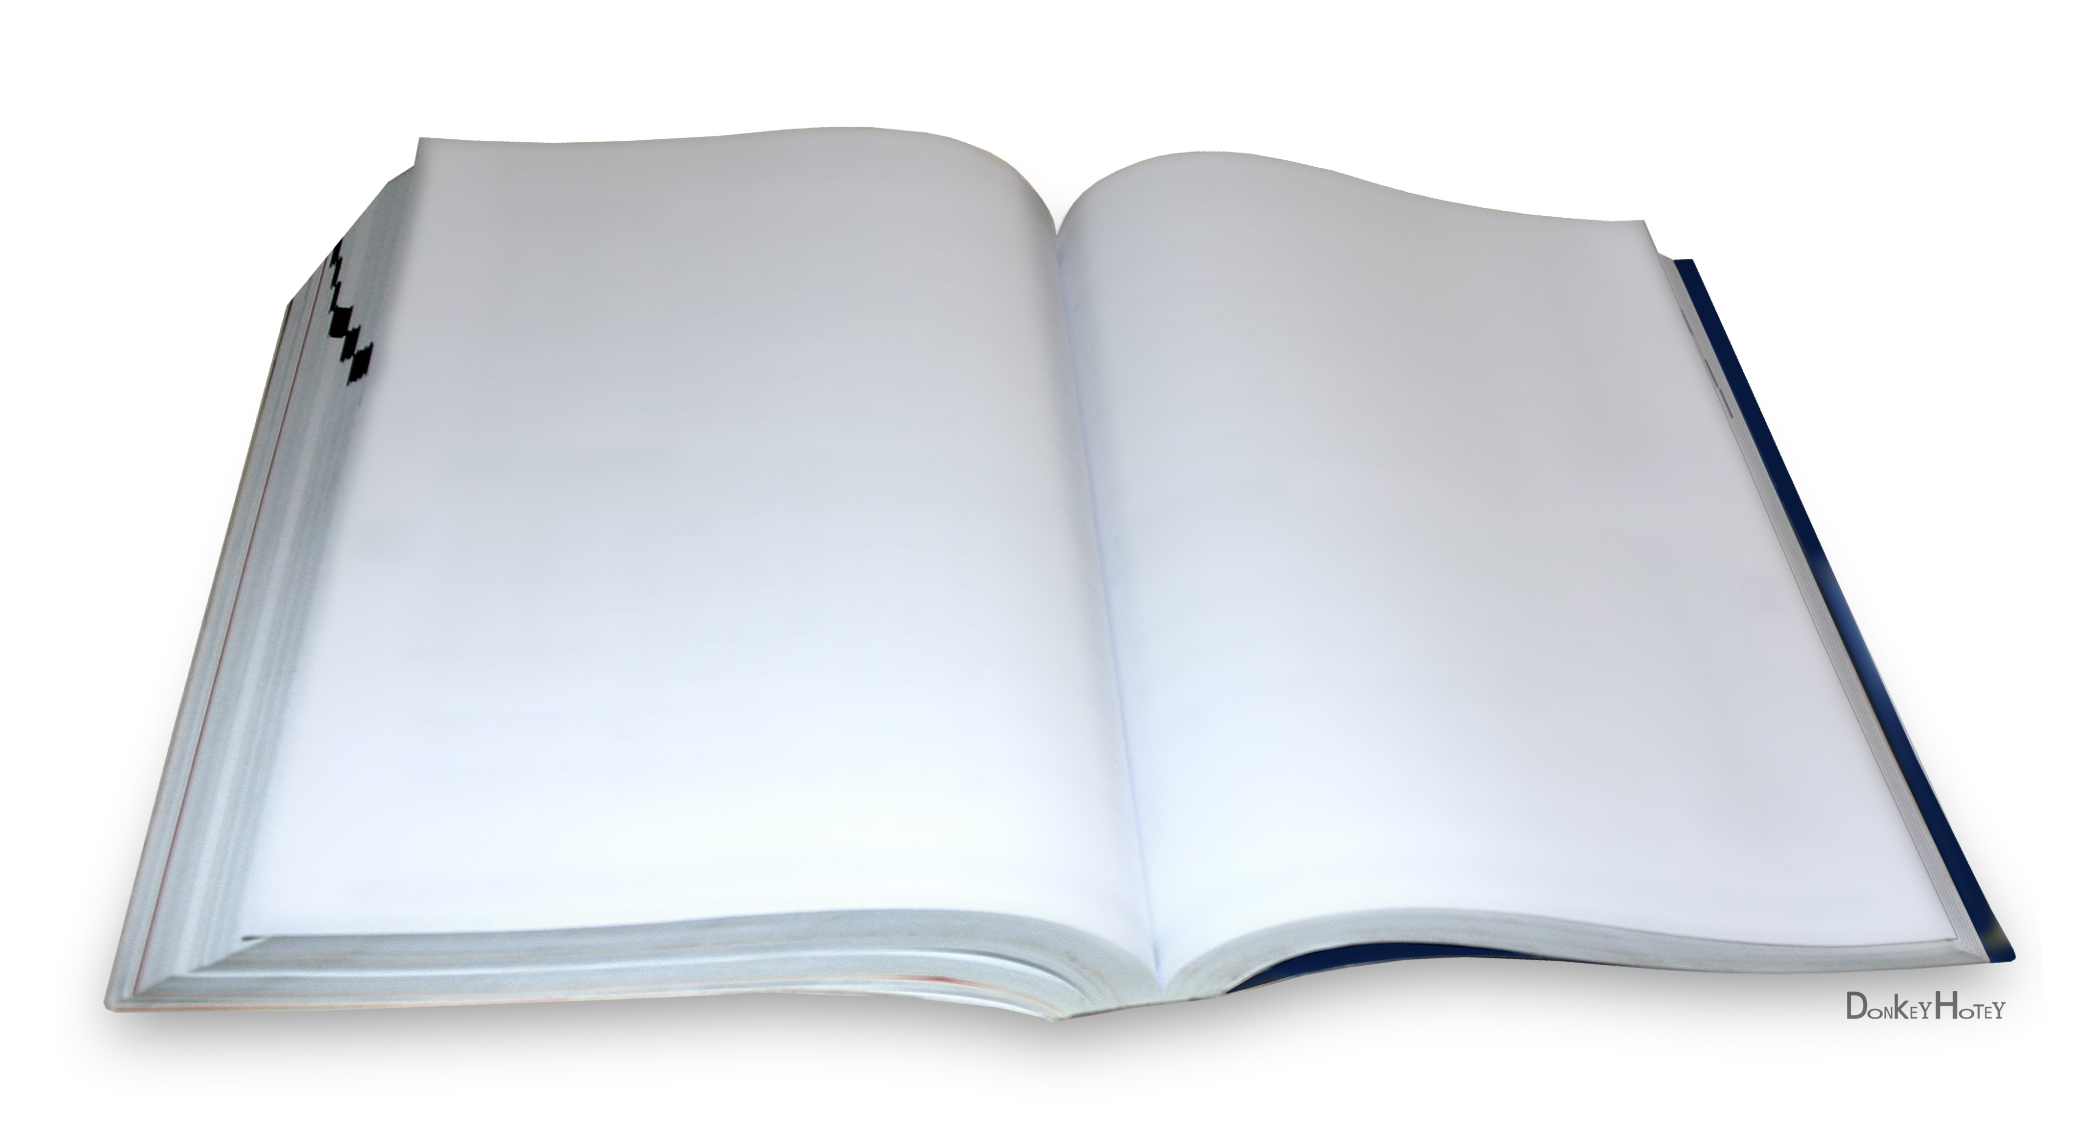 Book clipart open text Not text casting Blank photo